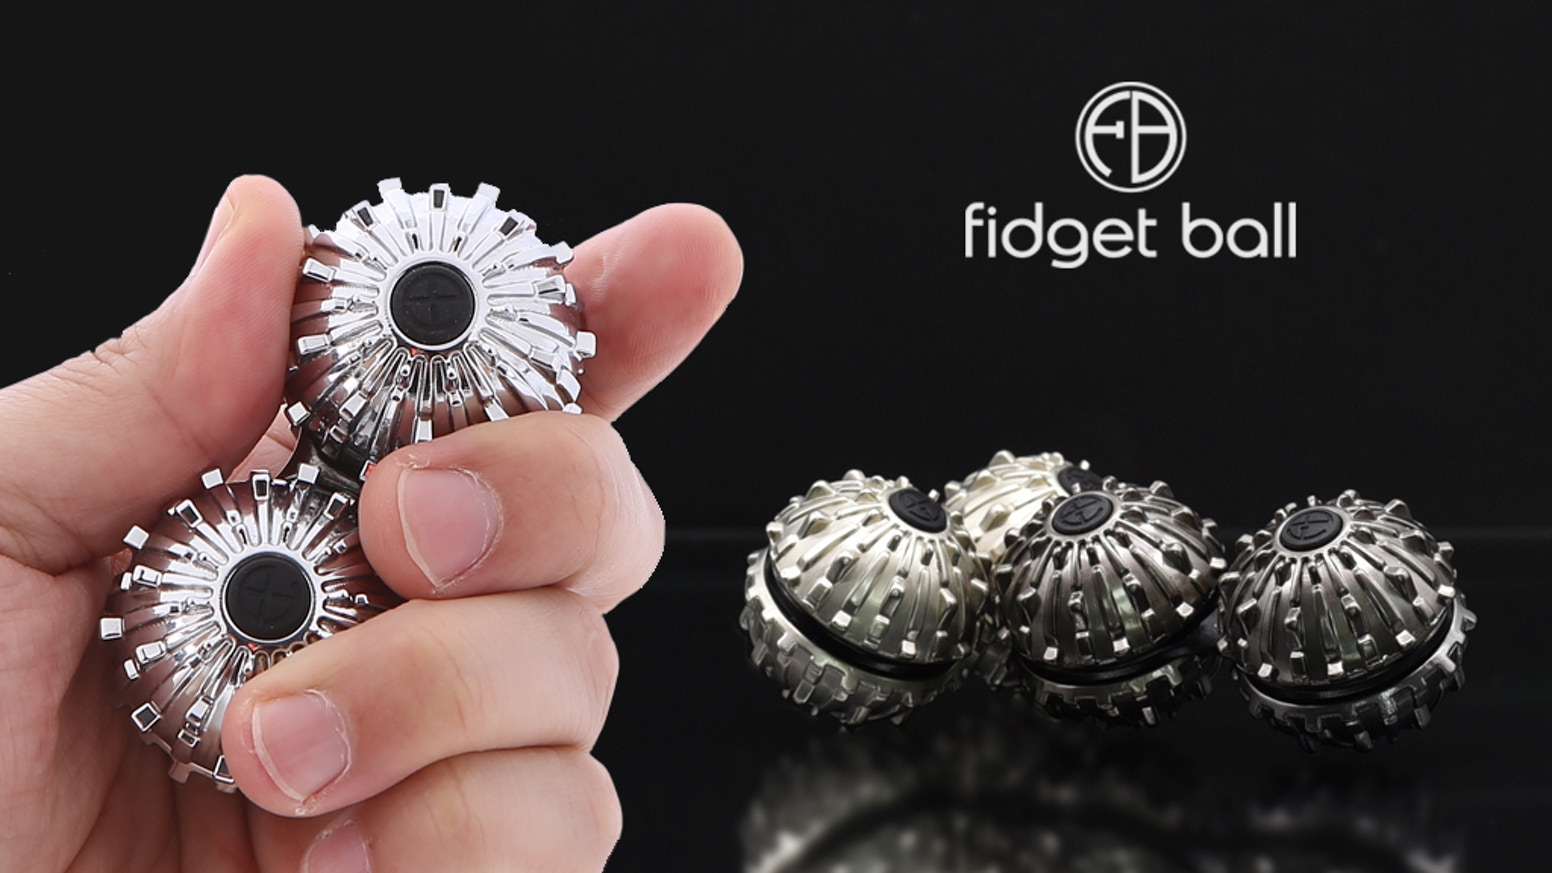 Fidget Ball is designed to help you enhance your focus through perpetual fidgeting motions, soft ASMR sounds, & therapeutic massages.